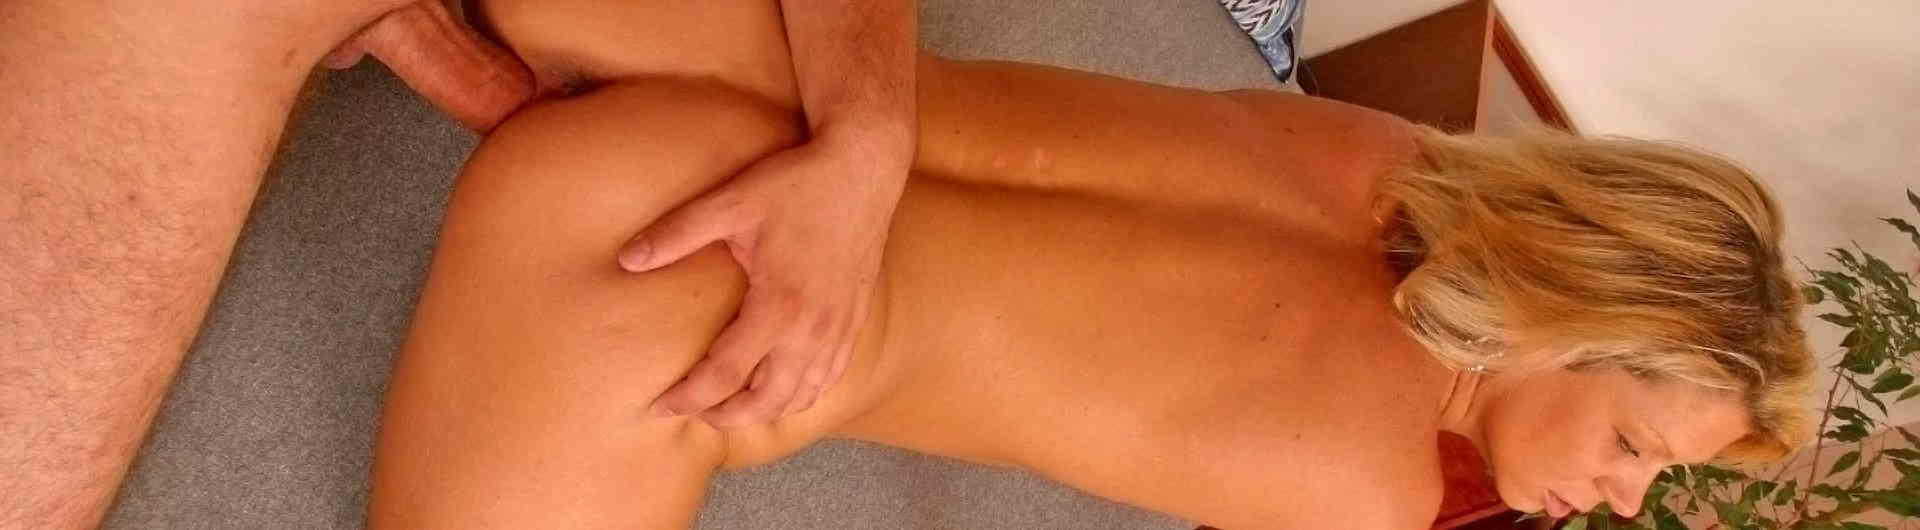 Porn video : Amateur couple that wants to be seen by the world